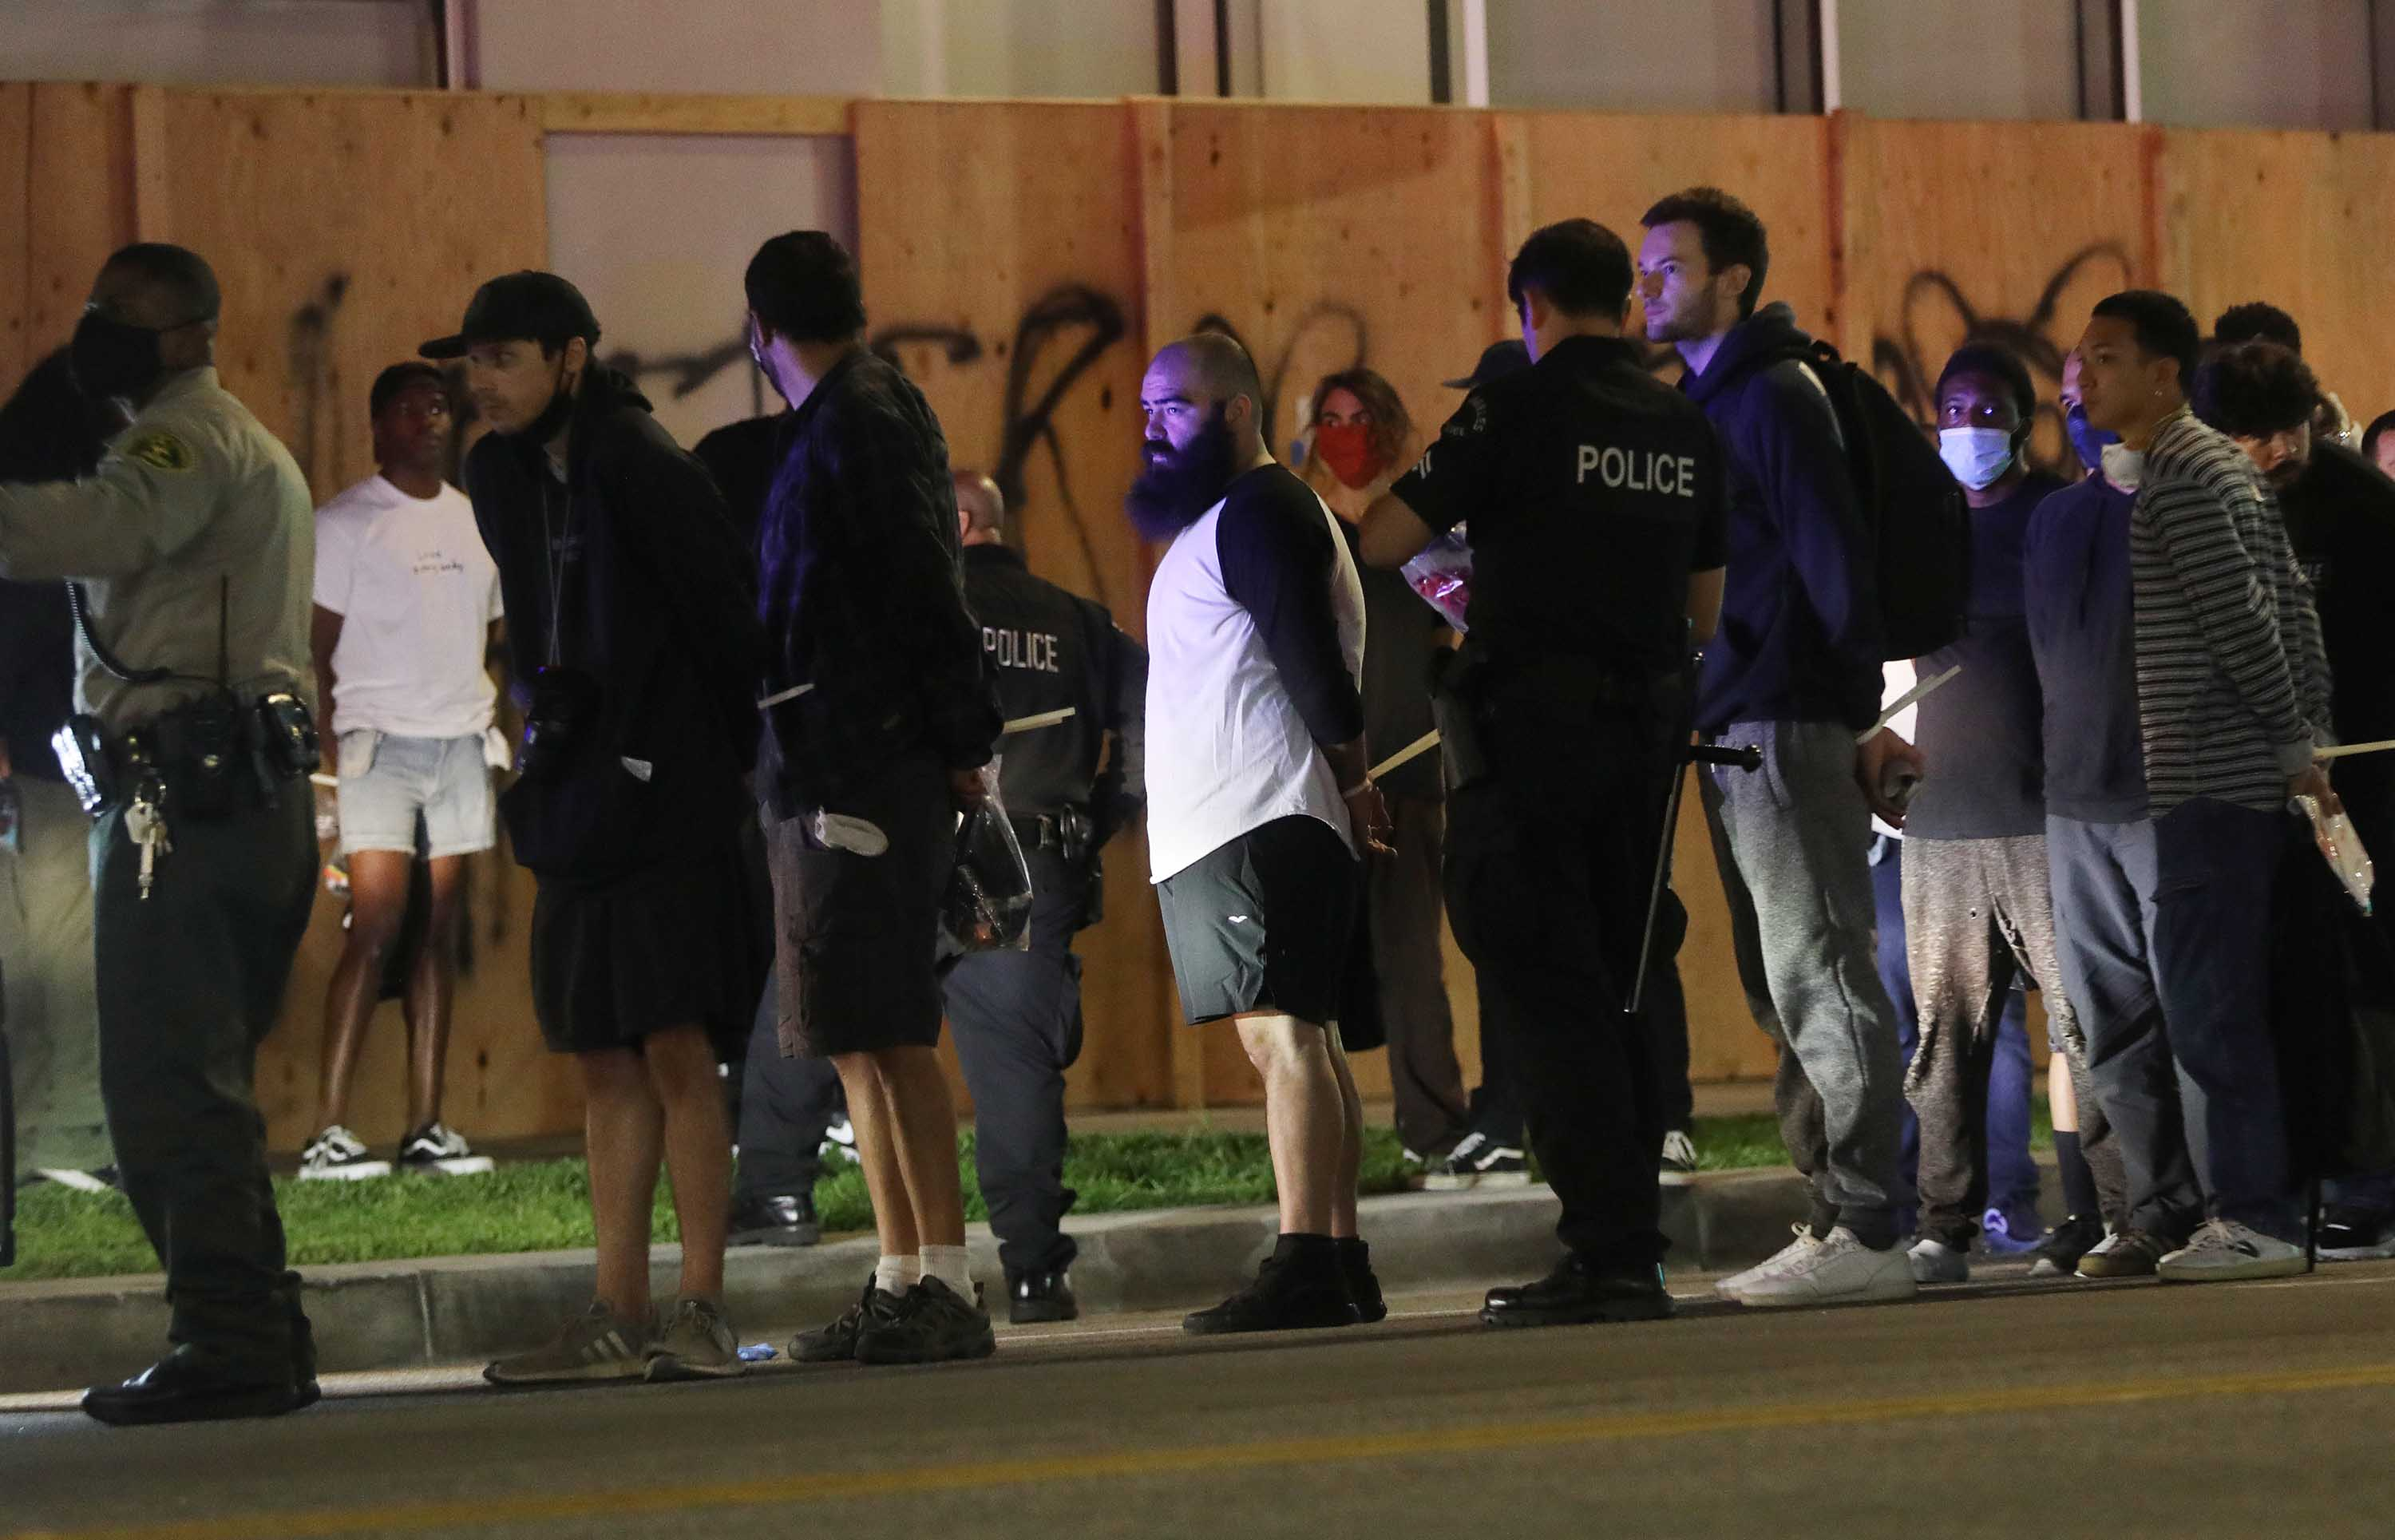 People stand handcuffed by police in the Hollywood area during an emergency curfew on June 1 in Los Angeles, California.